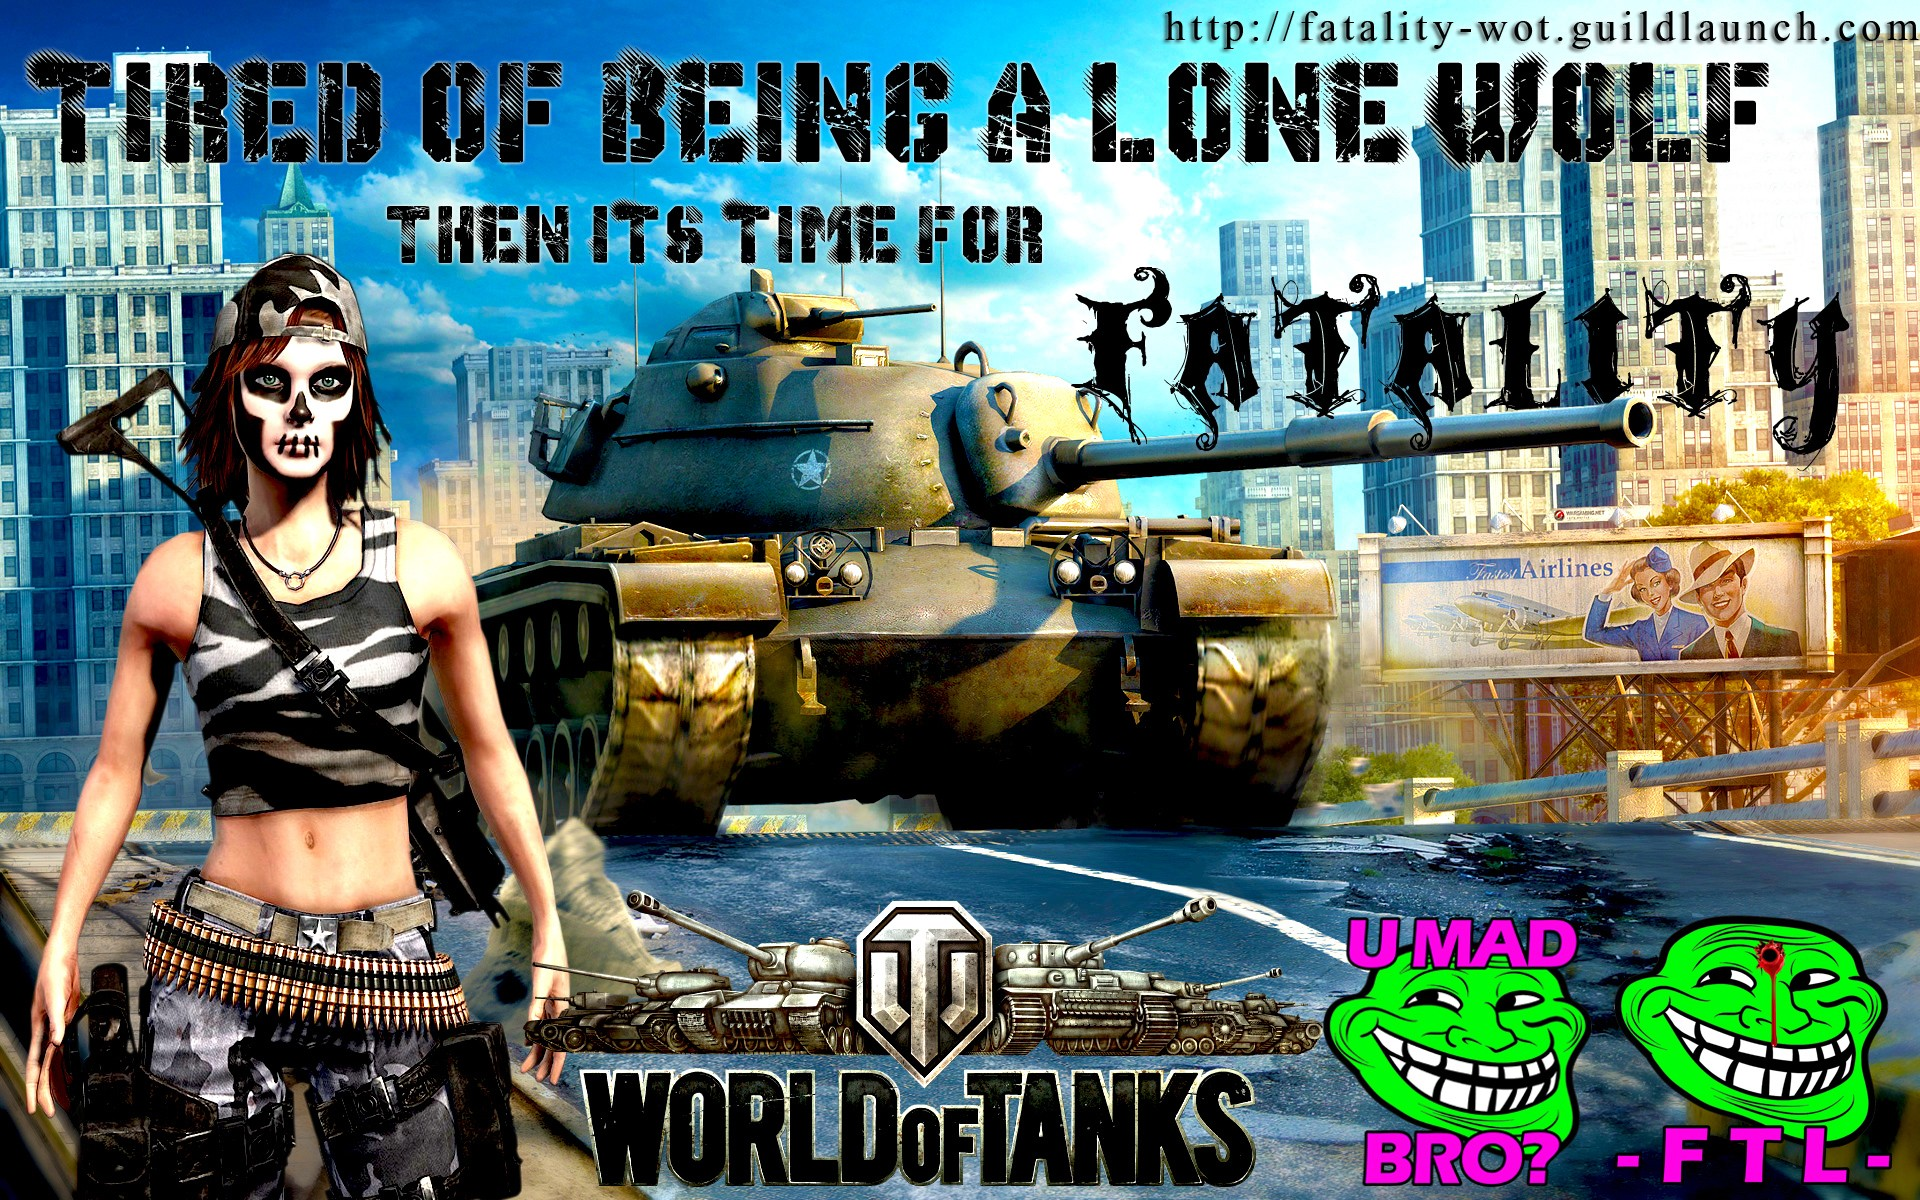 T110E3 HEAVY TANK RECRUITMENT -FTL- FTLTY FATALITY FATAL1TY CLAN WALLPAPER WORLD OF TANKS